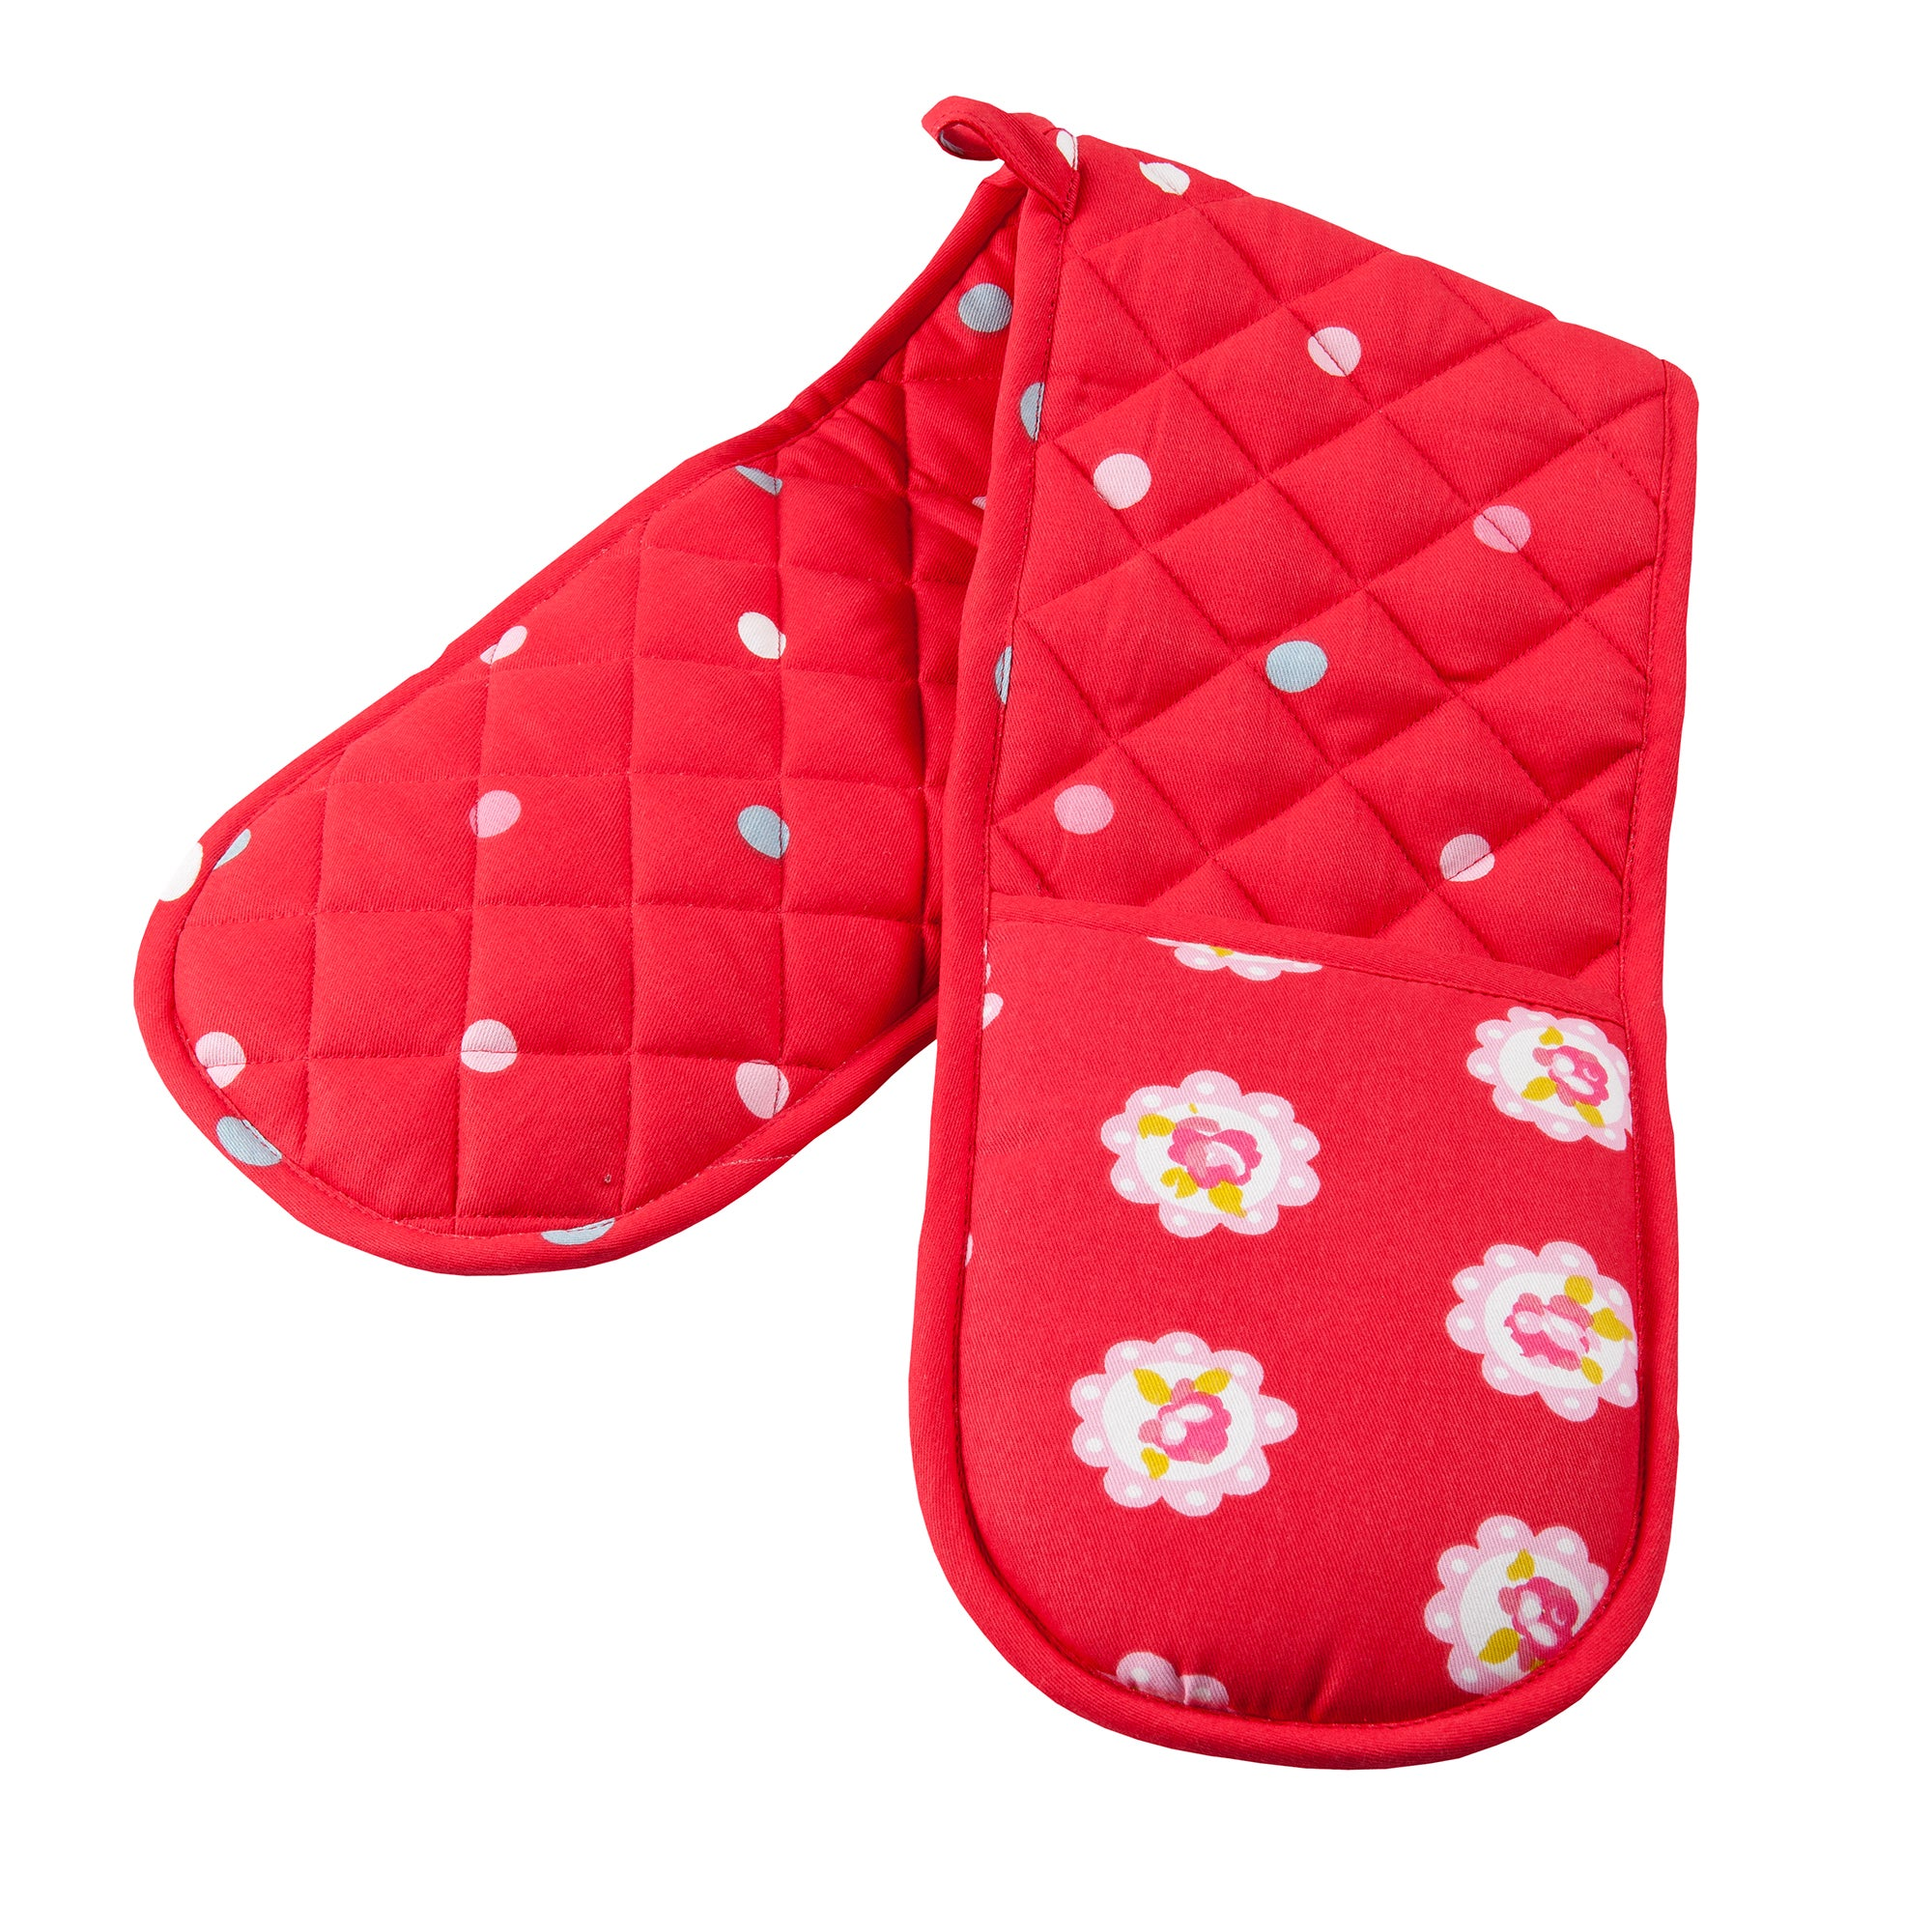 Rose and Ellis Allexton Double Oven Glove